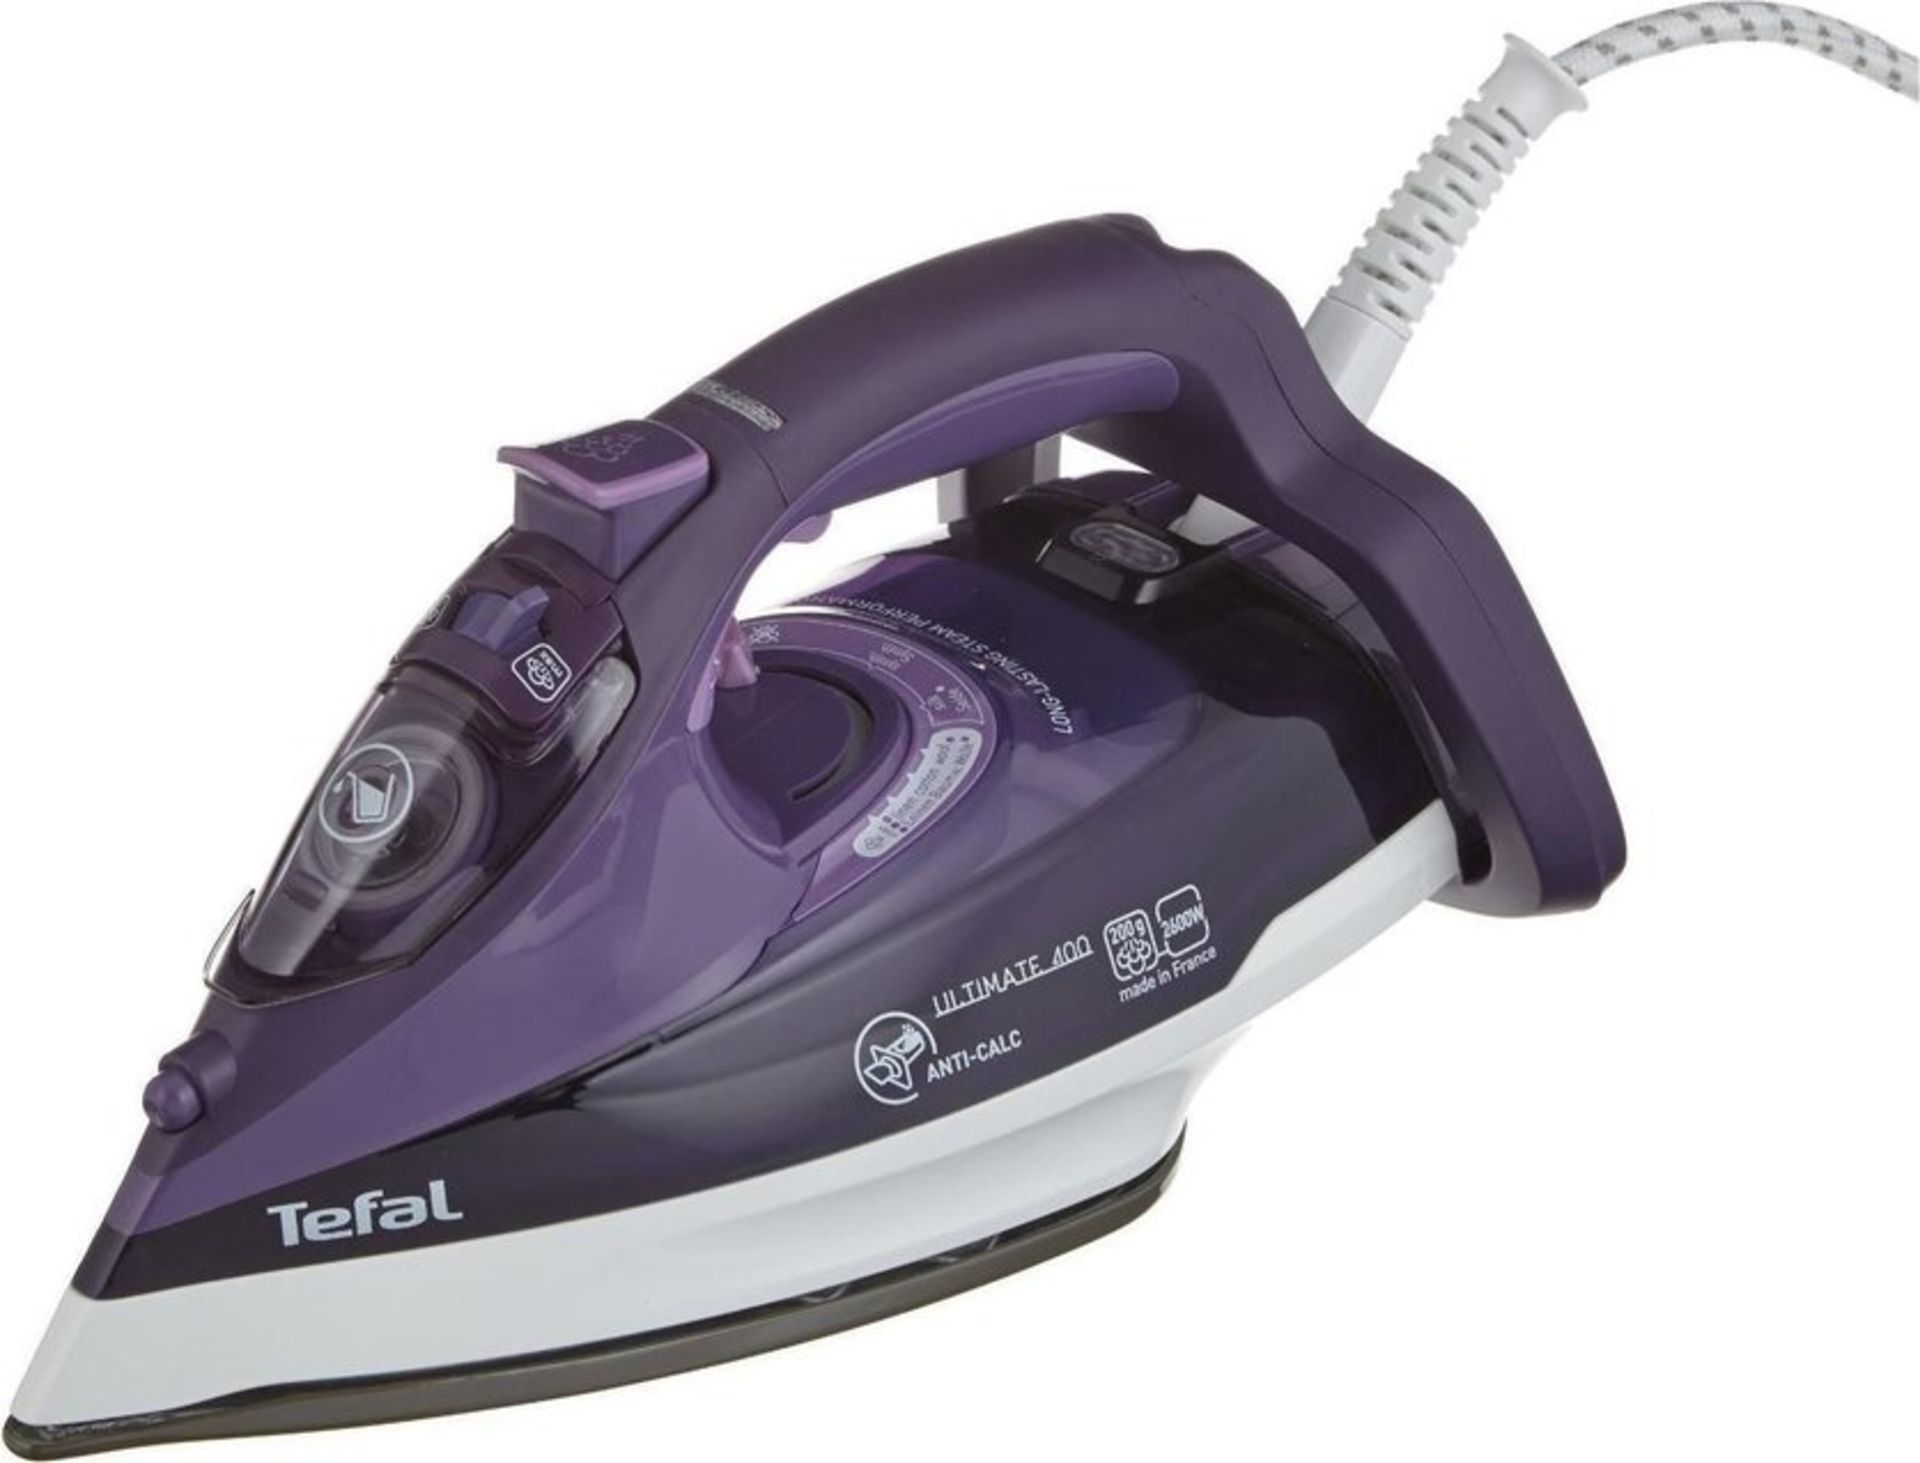 Lot 10144 - V Brand New Tefal Ultimate Anti Calc 400 2600W Turbo Steam Iron - Glide Protect - Security On/